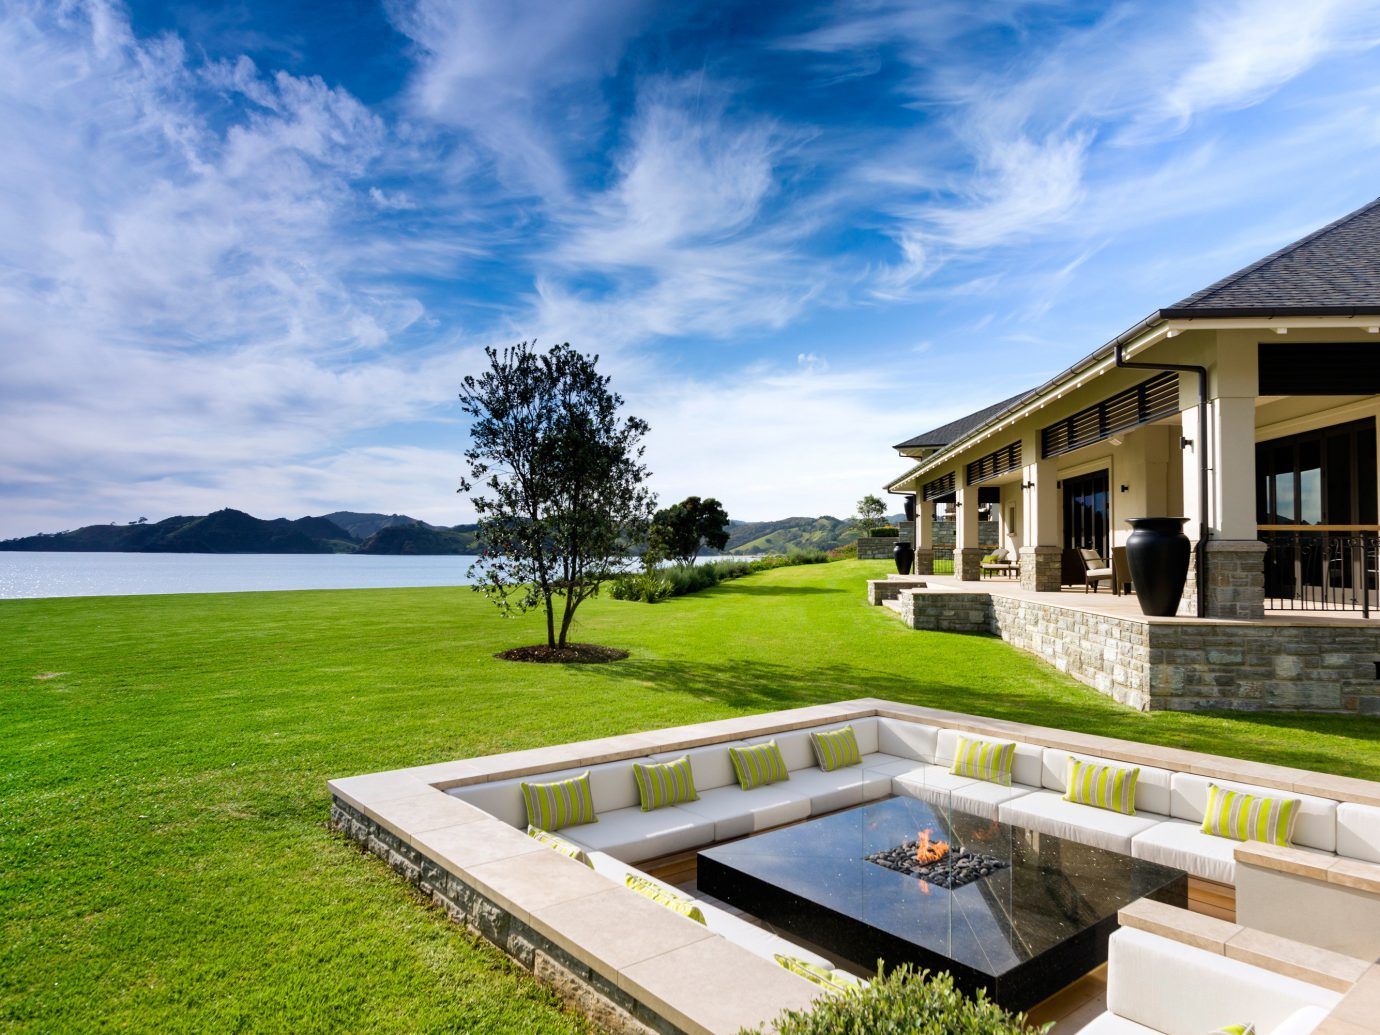 Hotels grass sky outdoor property house estate home vacation Villa real estate residential area swimming pool Resort backyard mansion